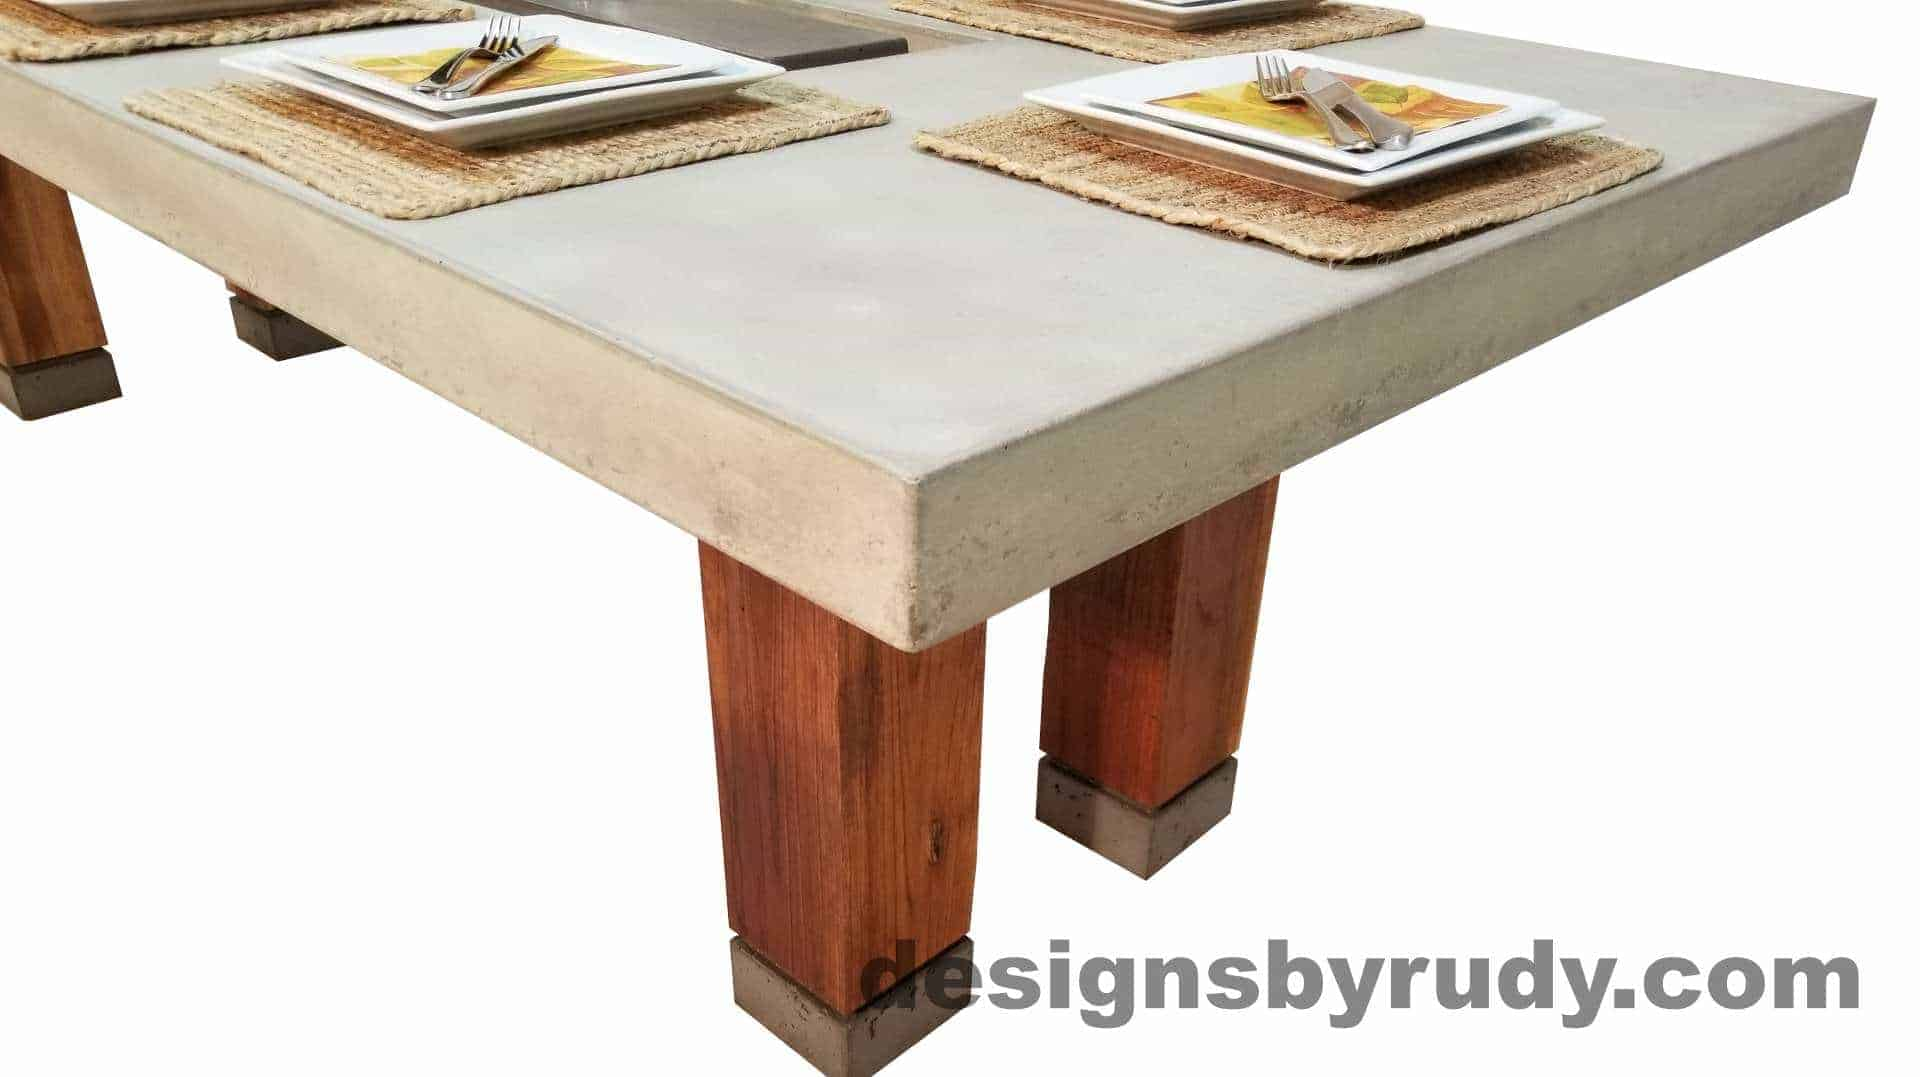 Concrete top dining table on teak legs with center serving tray - corner closeup view, Designs by Rudy